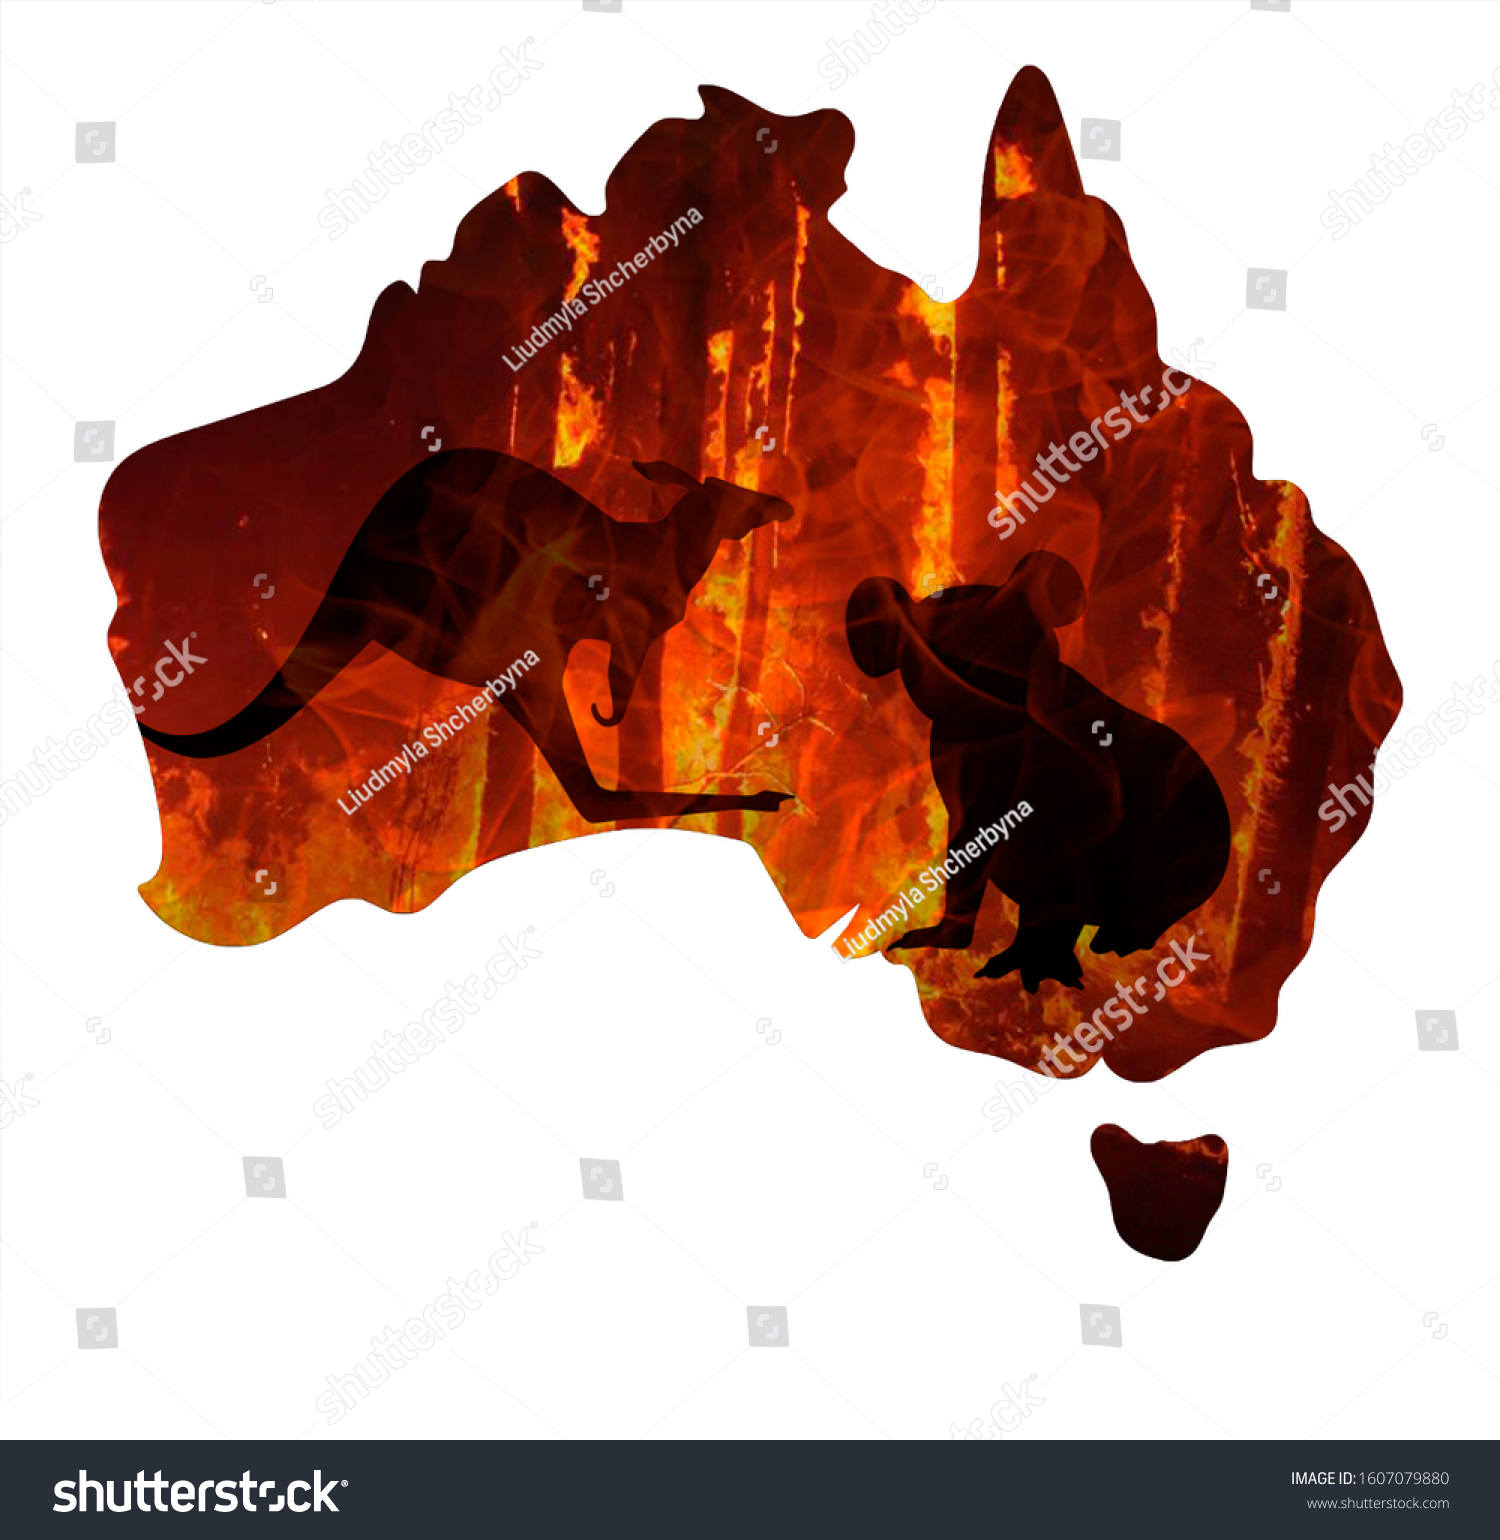 Fire in Australia. Animals killed in Fiers. Catastrophe and apocalypse. Pray for Australia #1607079880